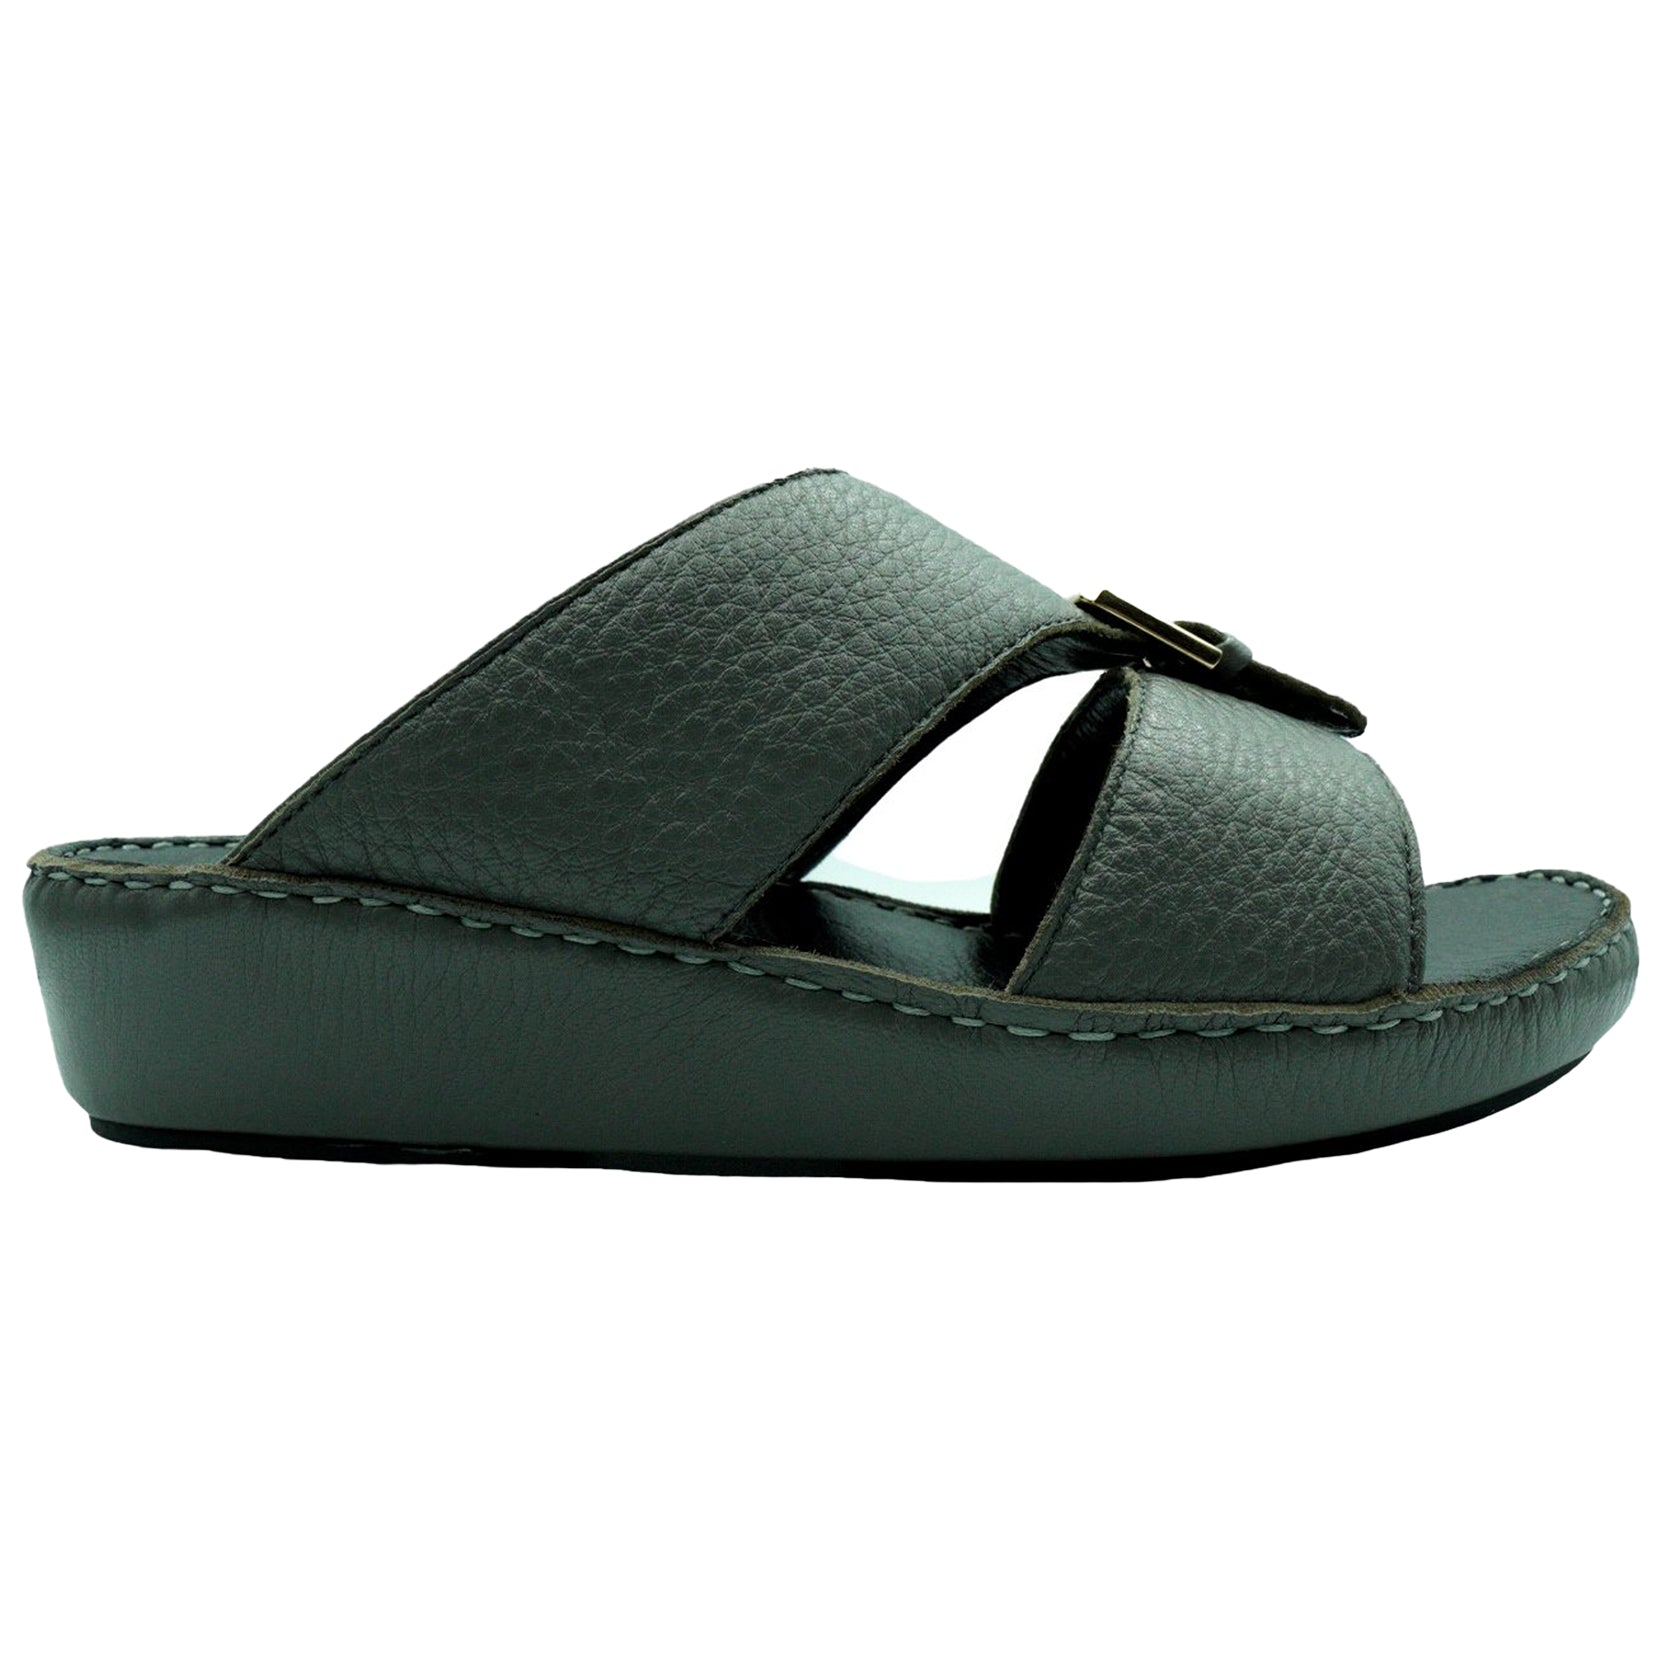 Grey Soft Deer Leather (317-3) Arabic Sandal